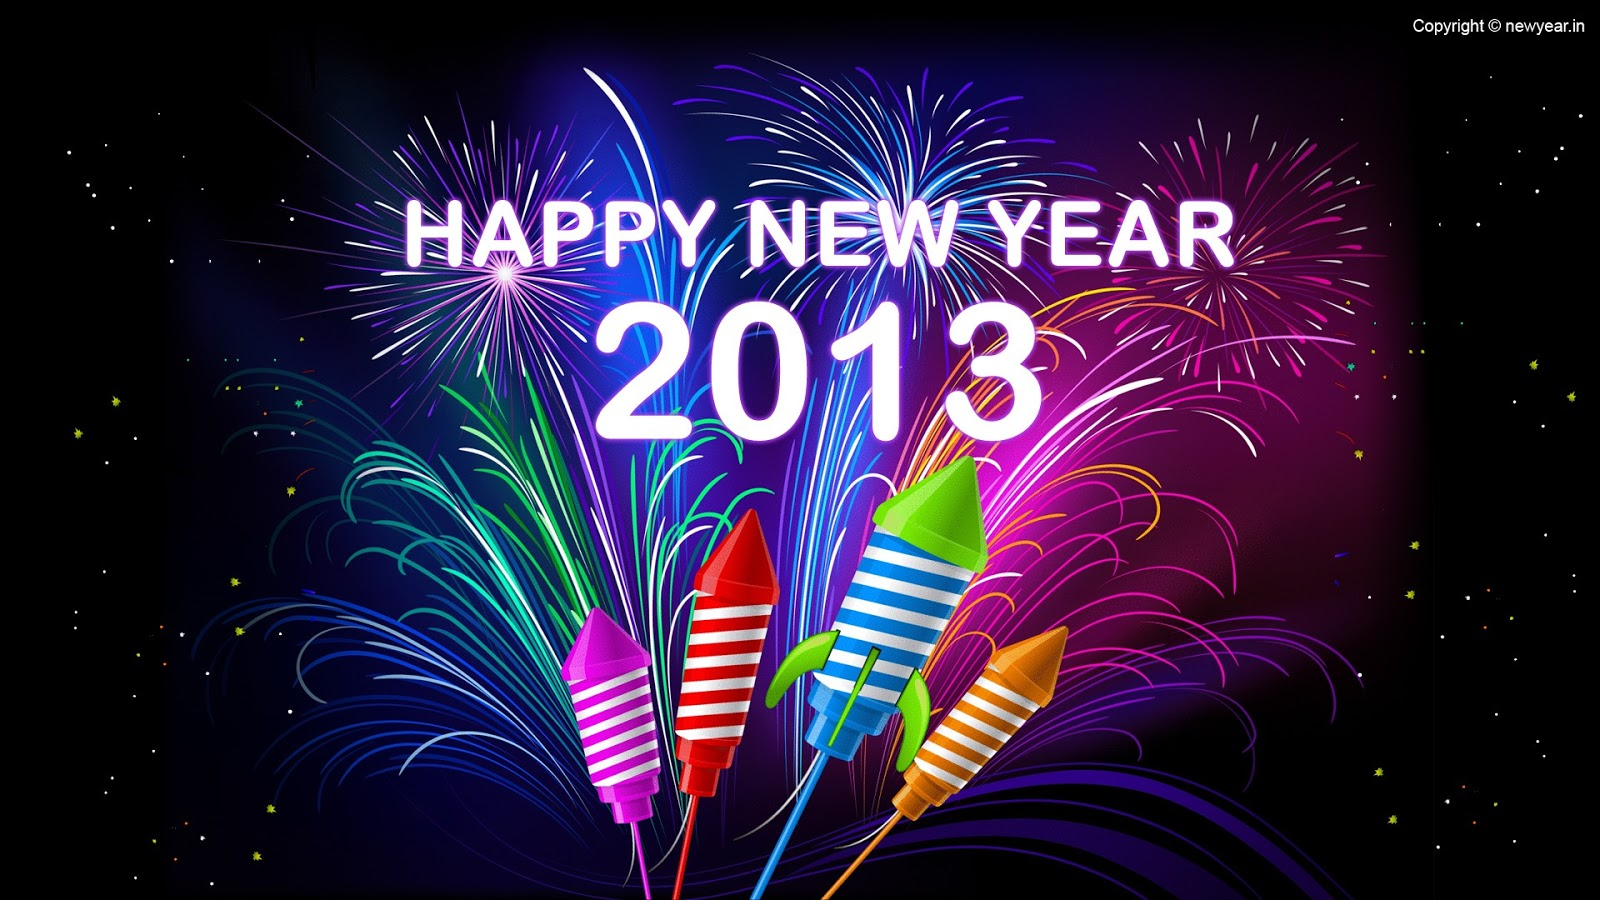 Hình nền Happy New Year 2013 | Happy New Year 2013 Wallpapers